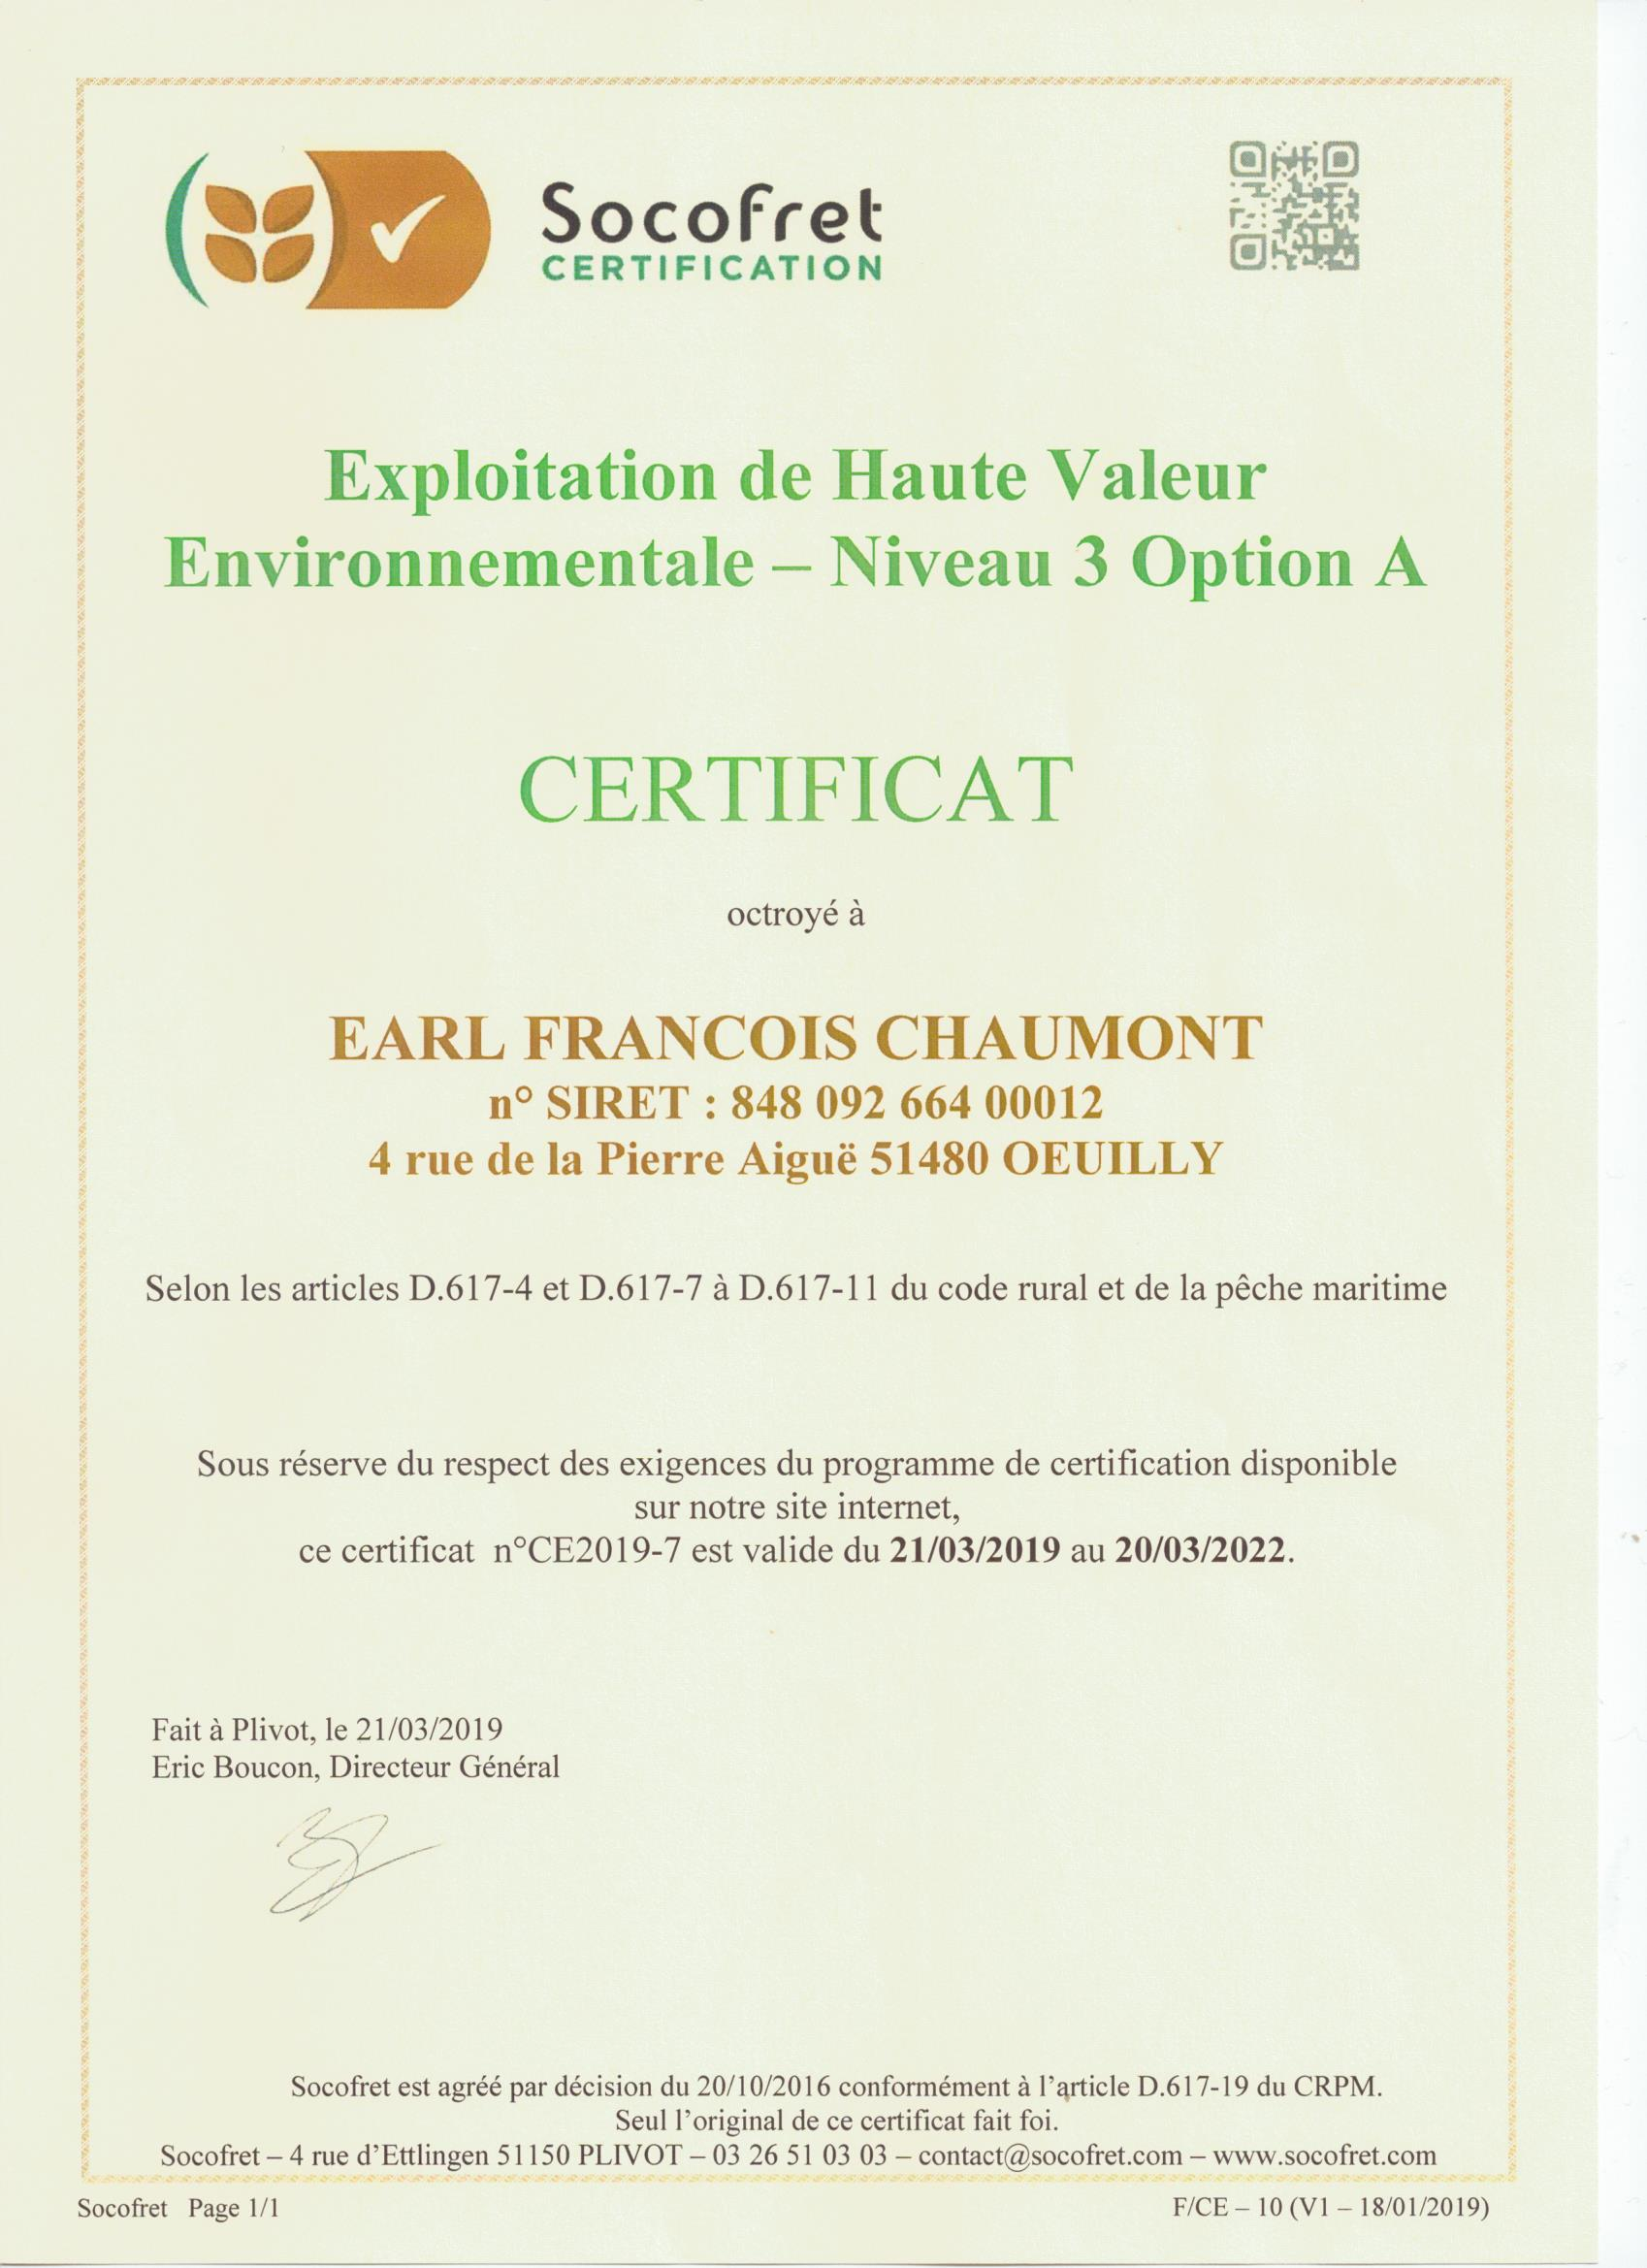 CERTIFICATION HVE 3